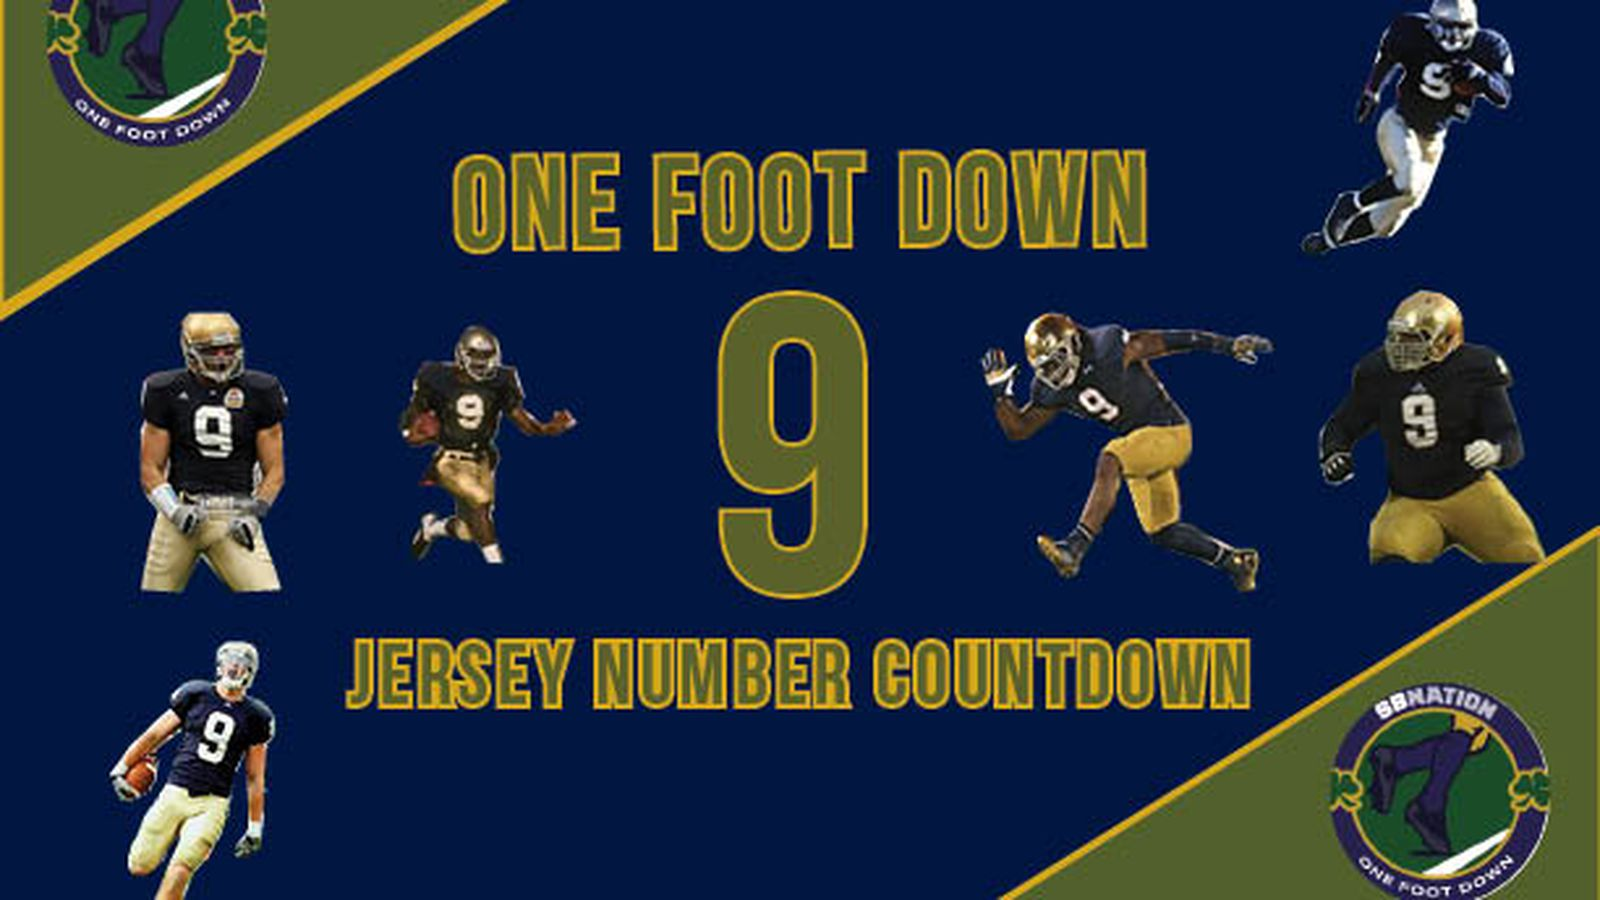 Notre Dame Football Jersey Number Countdown